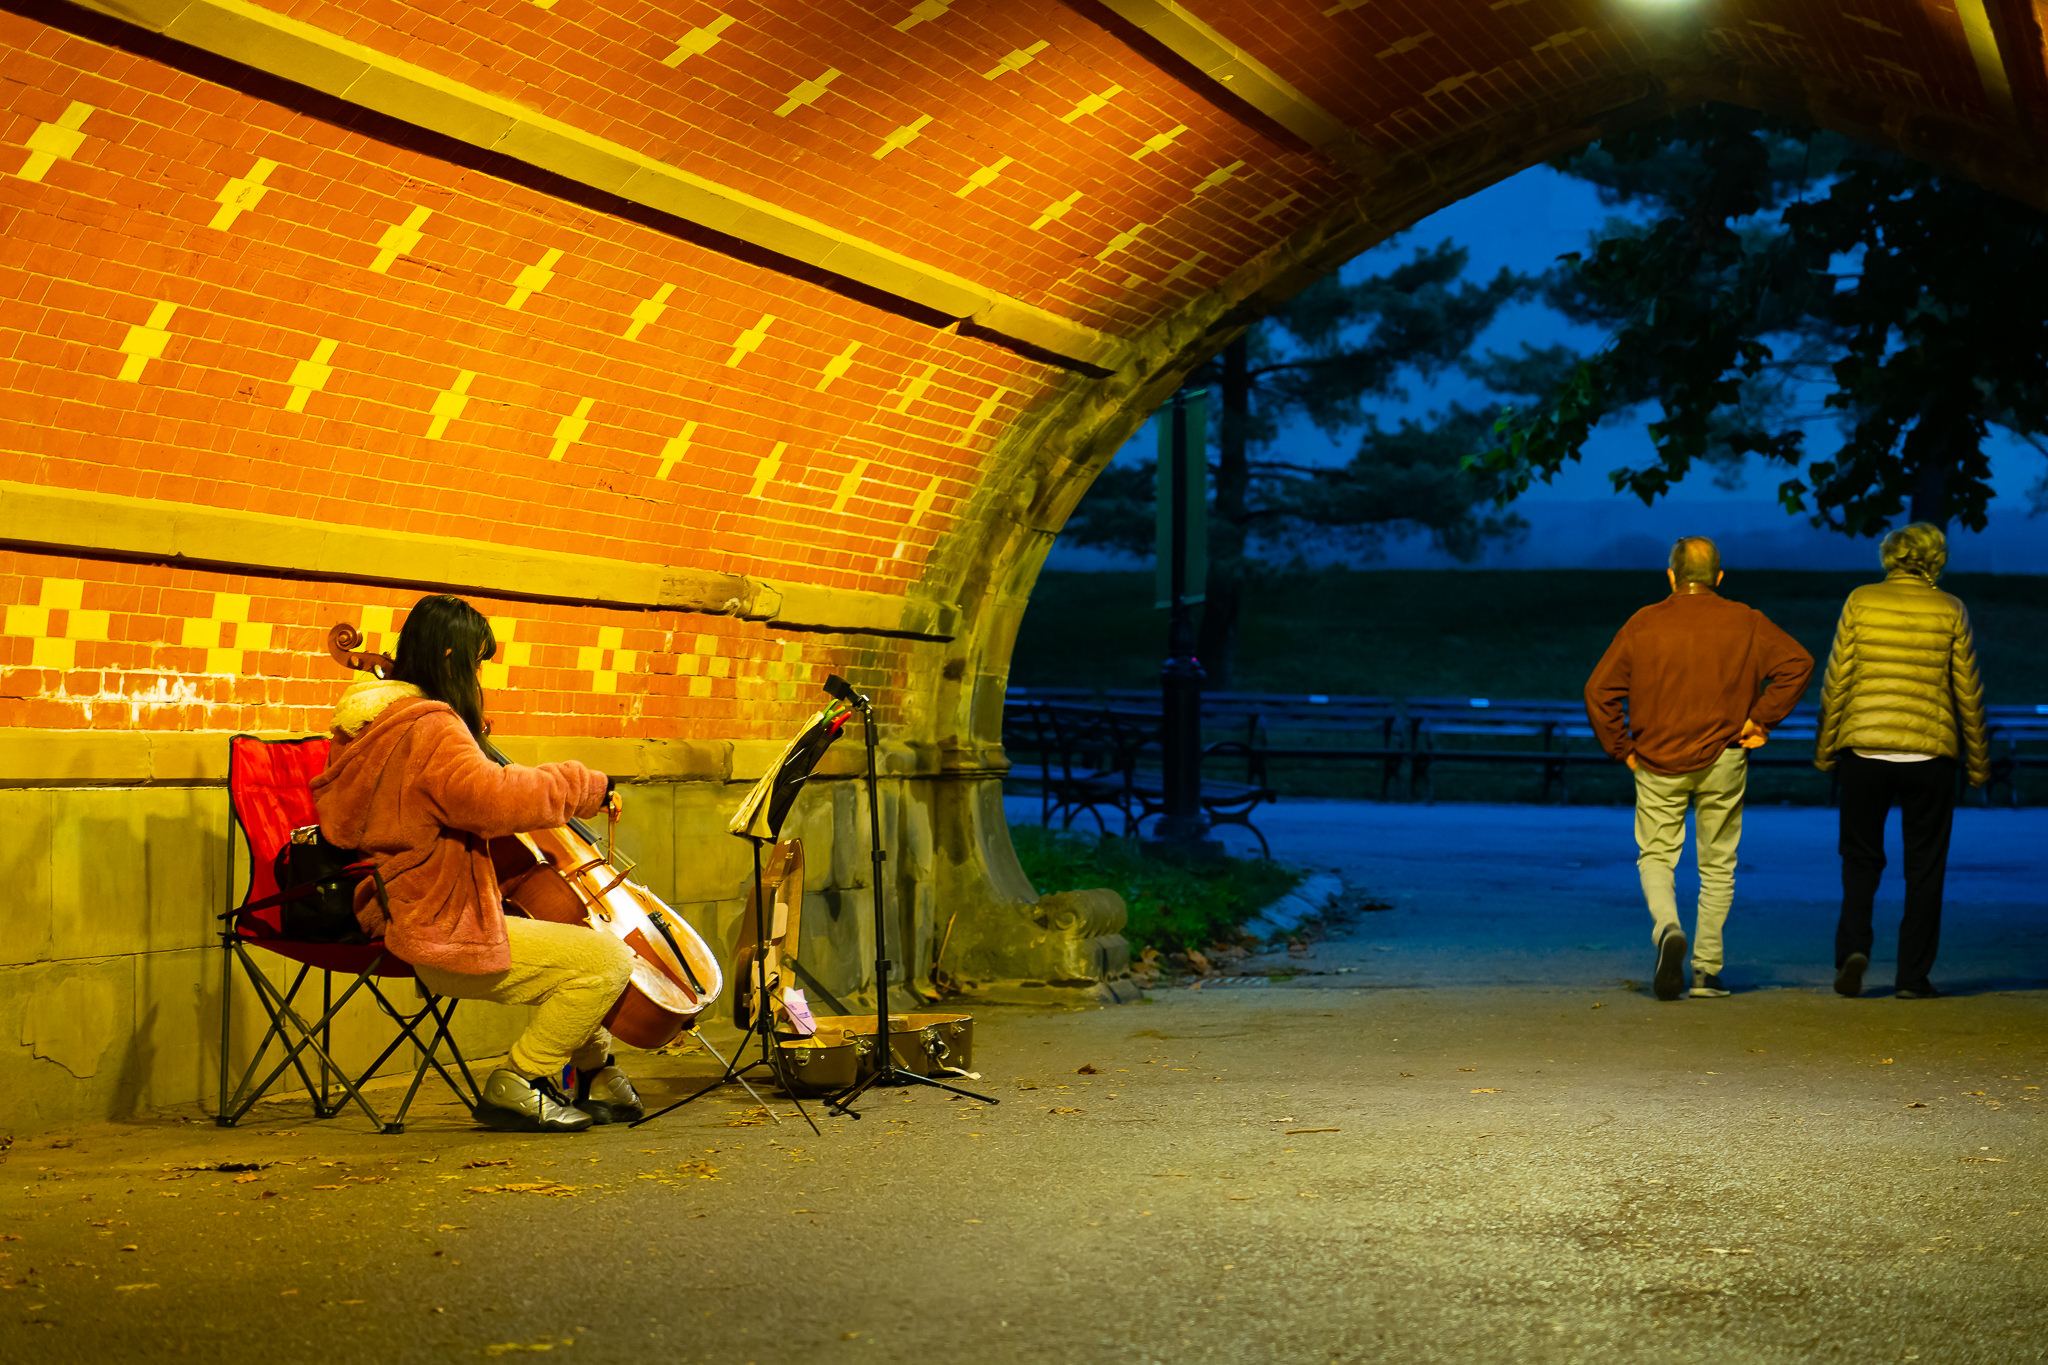 a photo of a cellist playing music in a tunnel in central park new york city